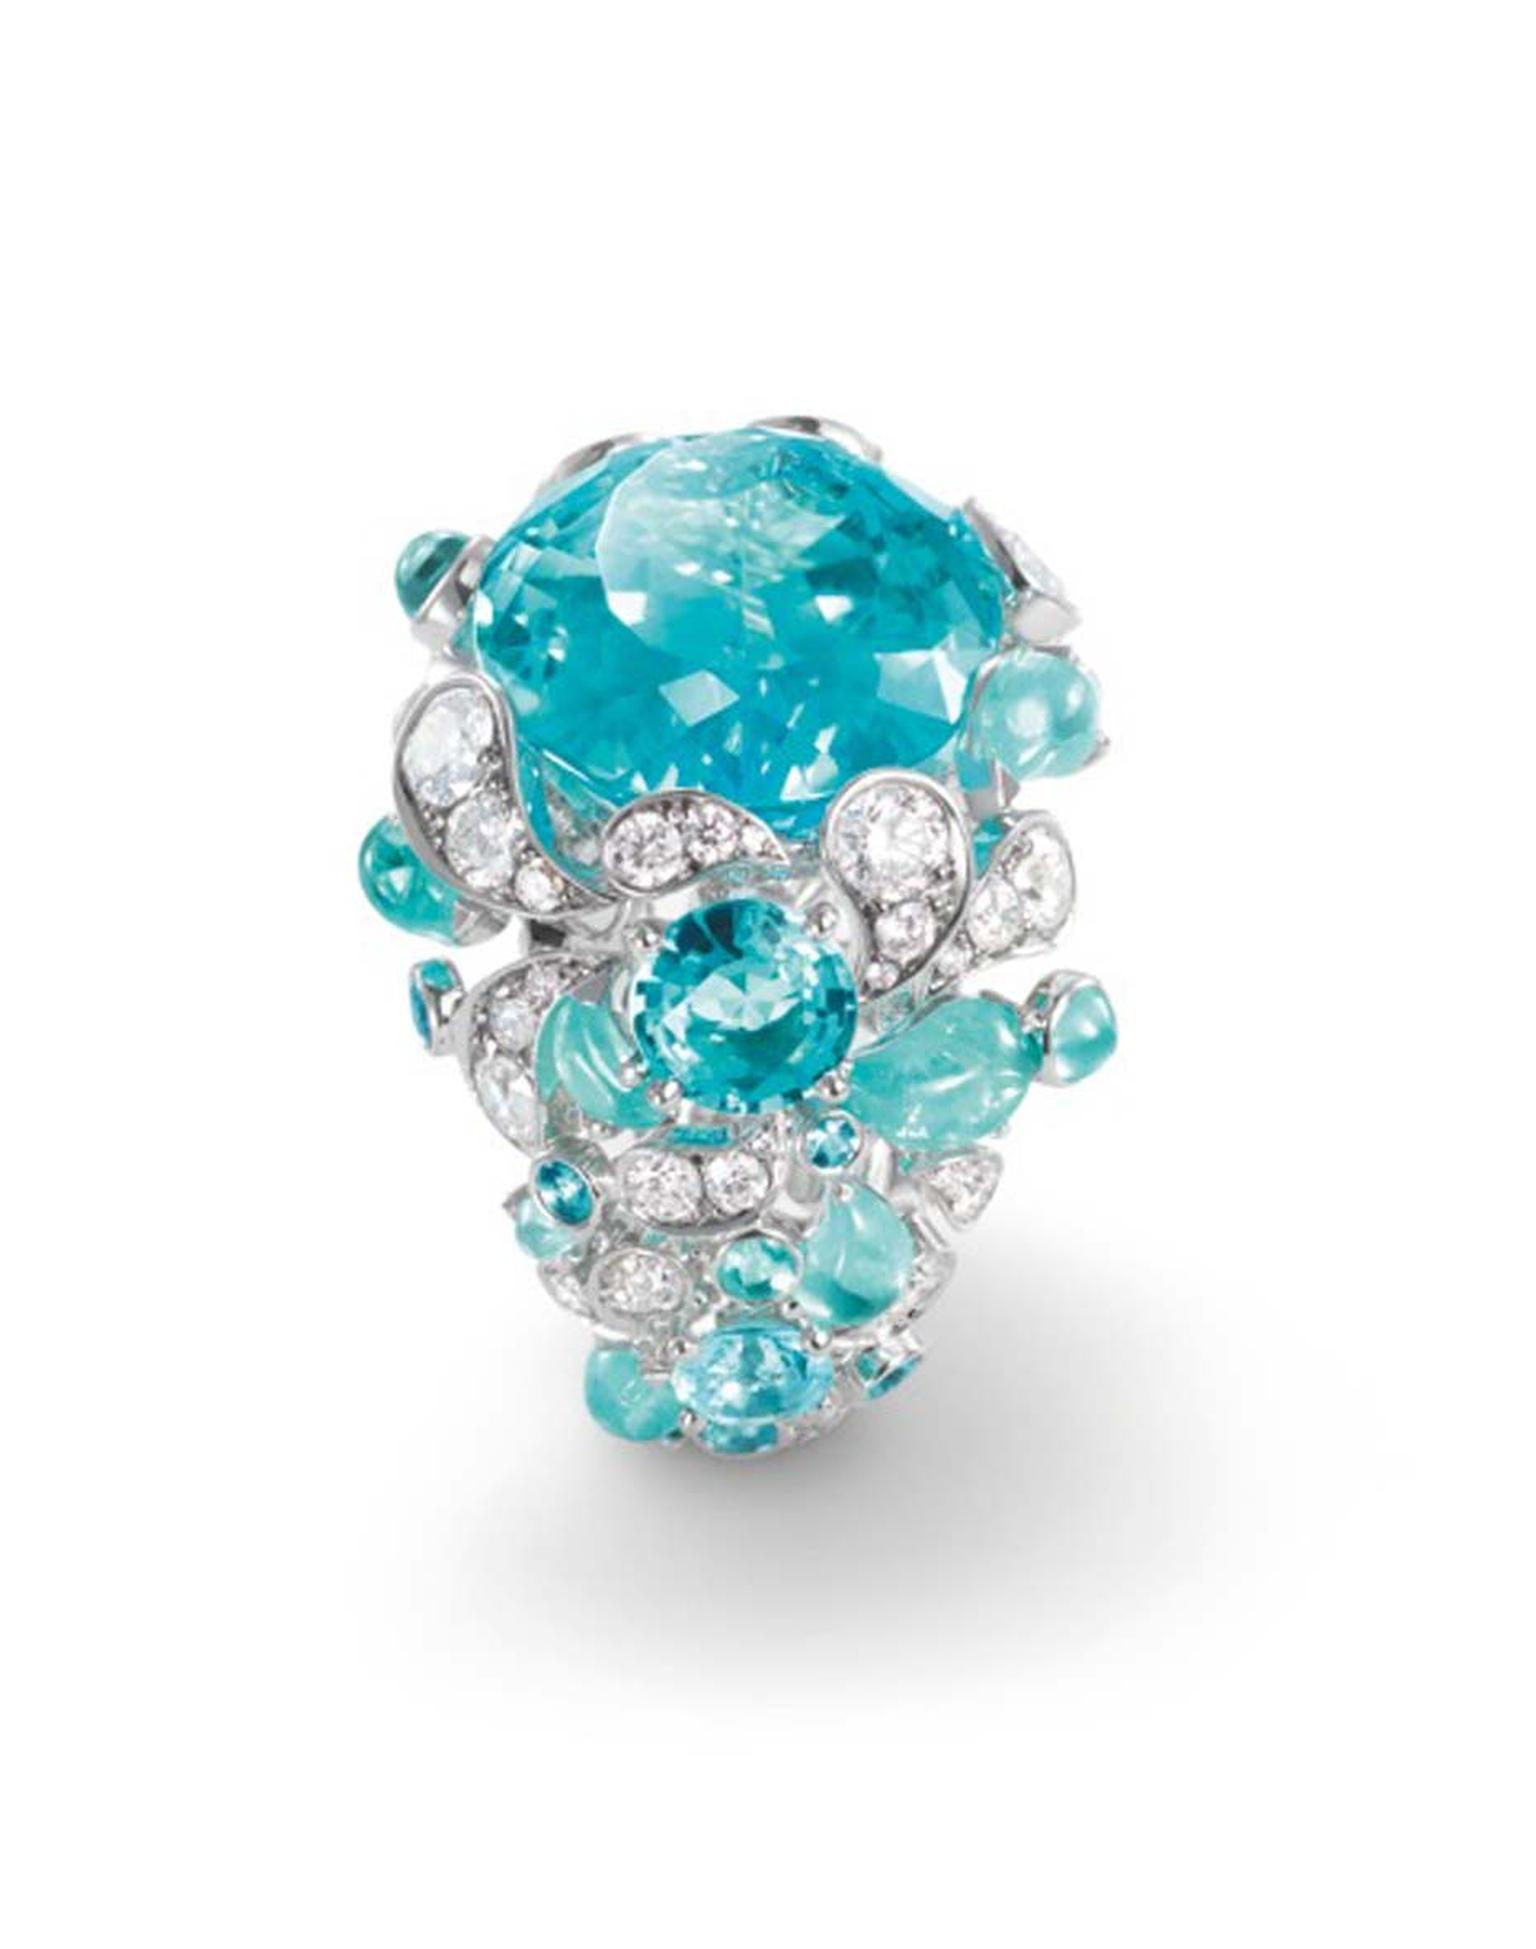 Chaumet also turned to Africa for its latest Lumières d'Eau high jewellery collection, which sets droplets of electric-blue Paraiba-like tourmalines off against splashes of diamonds and a large, square-cut aquamarines.